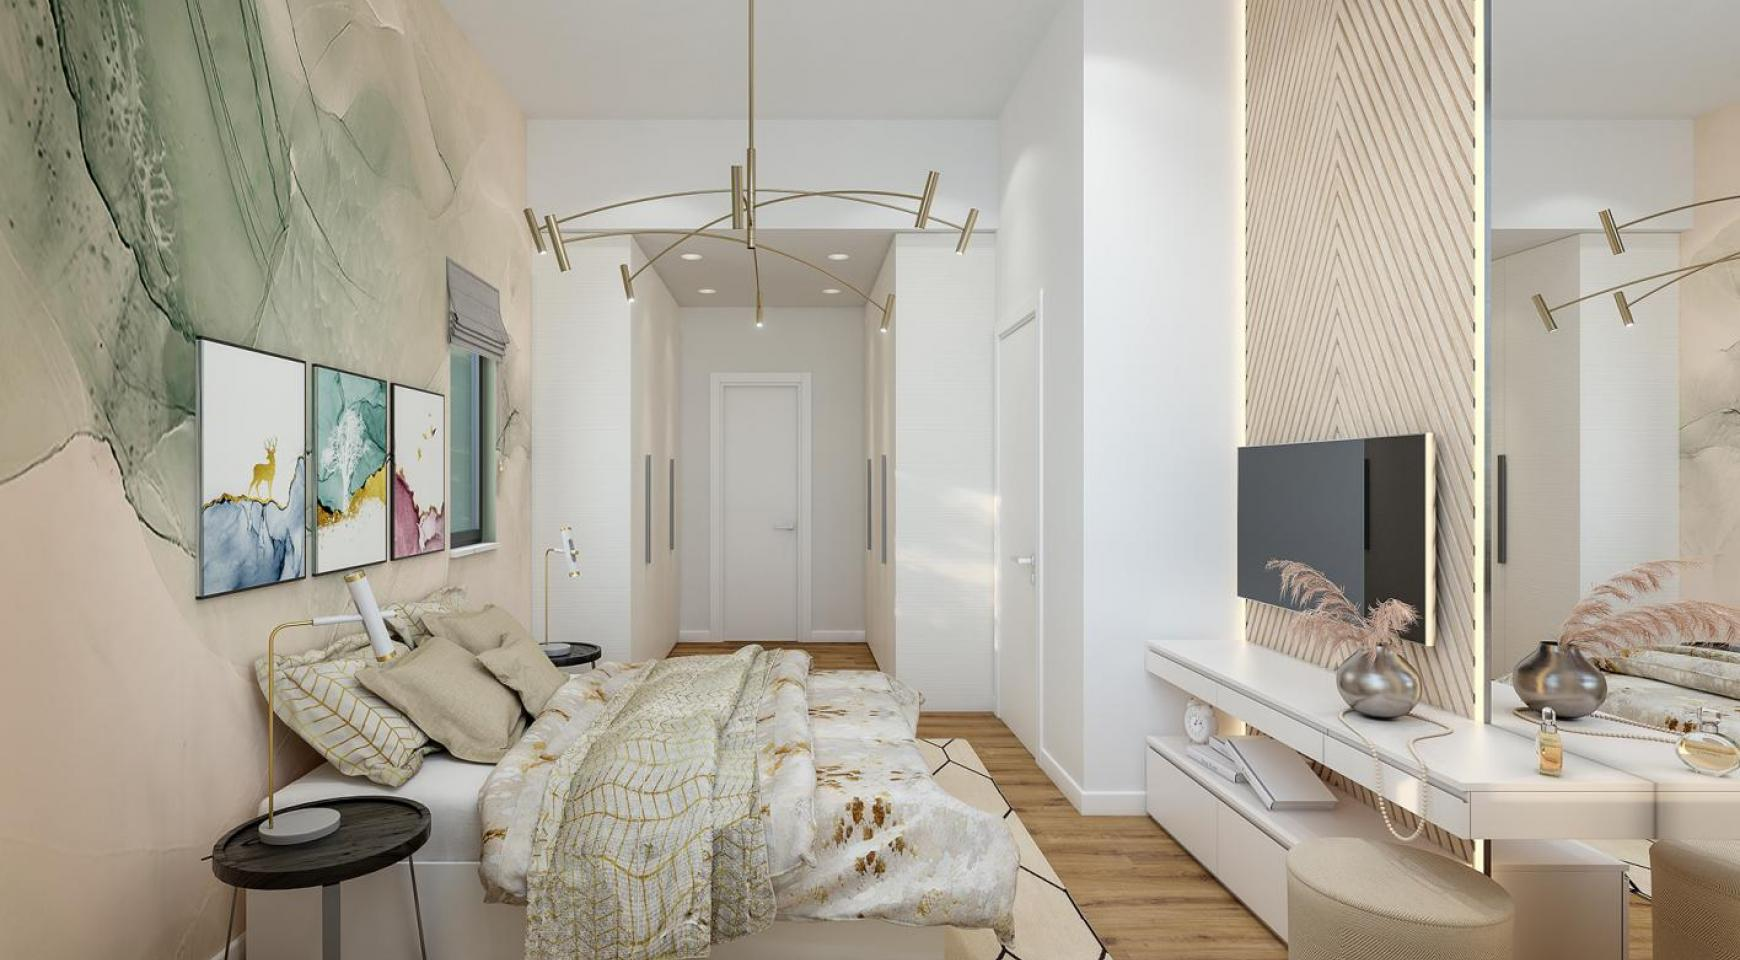 Urban City Residences, Block B. New Spacious 2 Bedroom Apartment 202 in the City Centre - 7